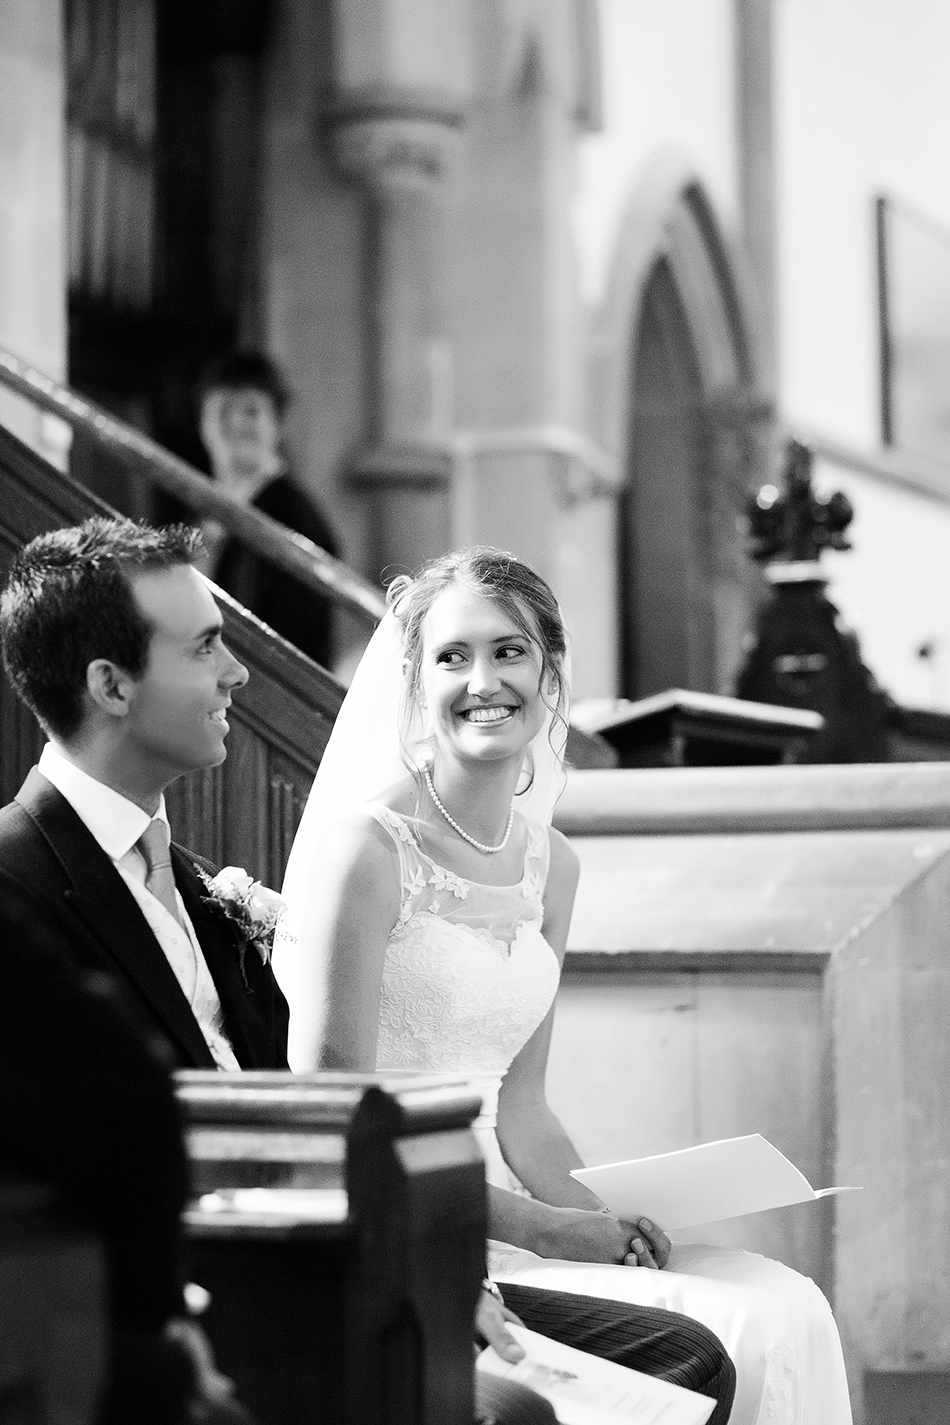 black and white wedding photography inside church of bride and groom